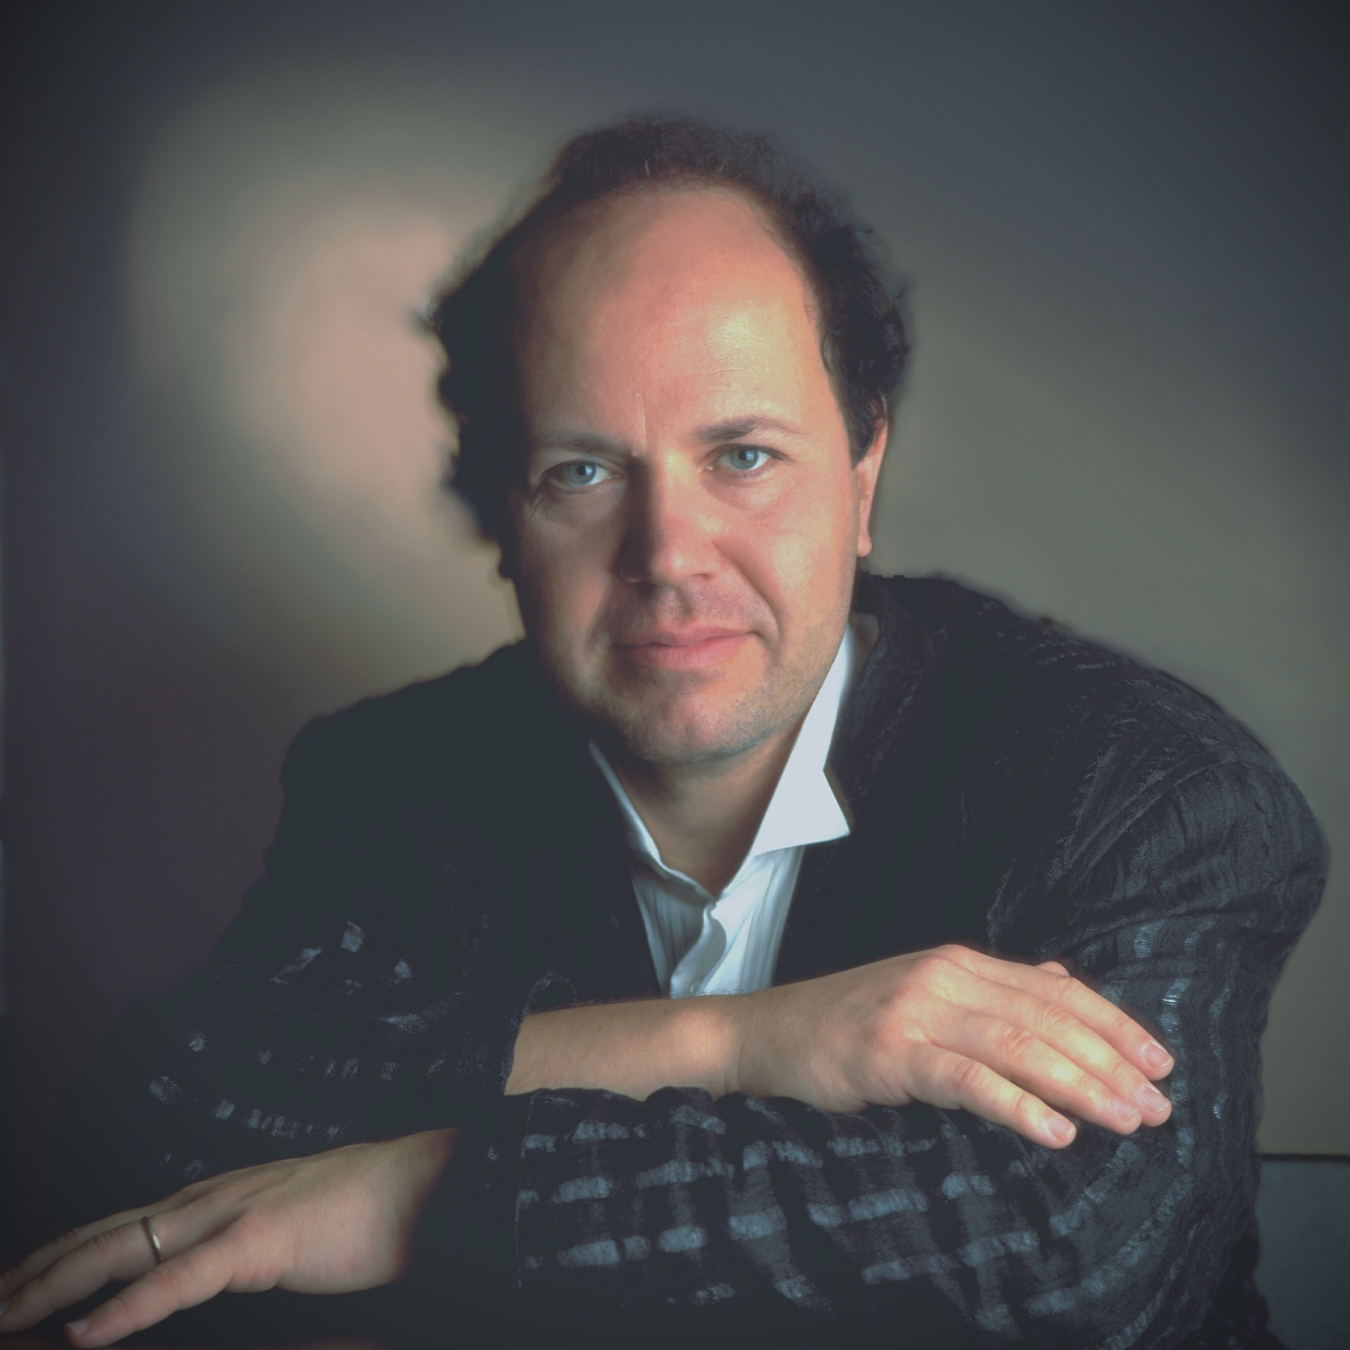 Jan Hammer portrait